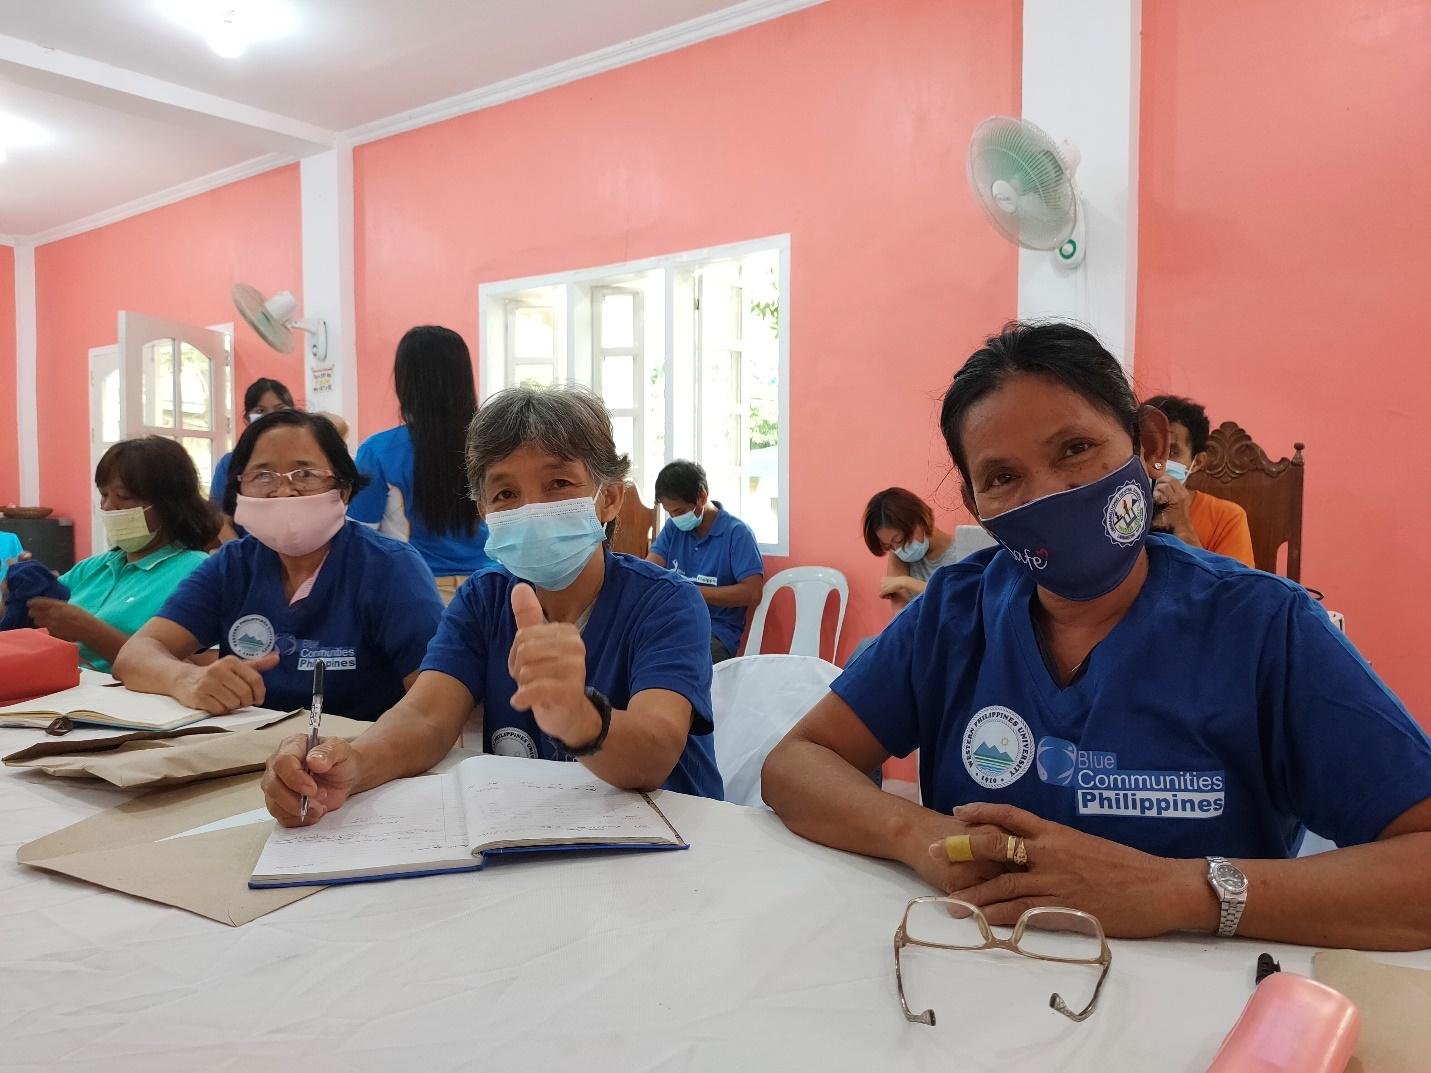 Village leaders during Blue Communities - Philippines' participatory planning workshop